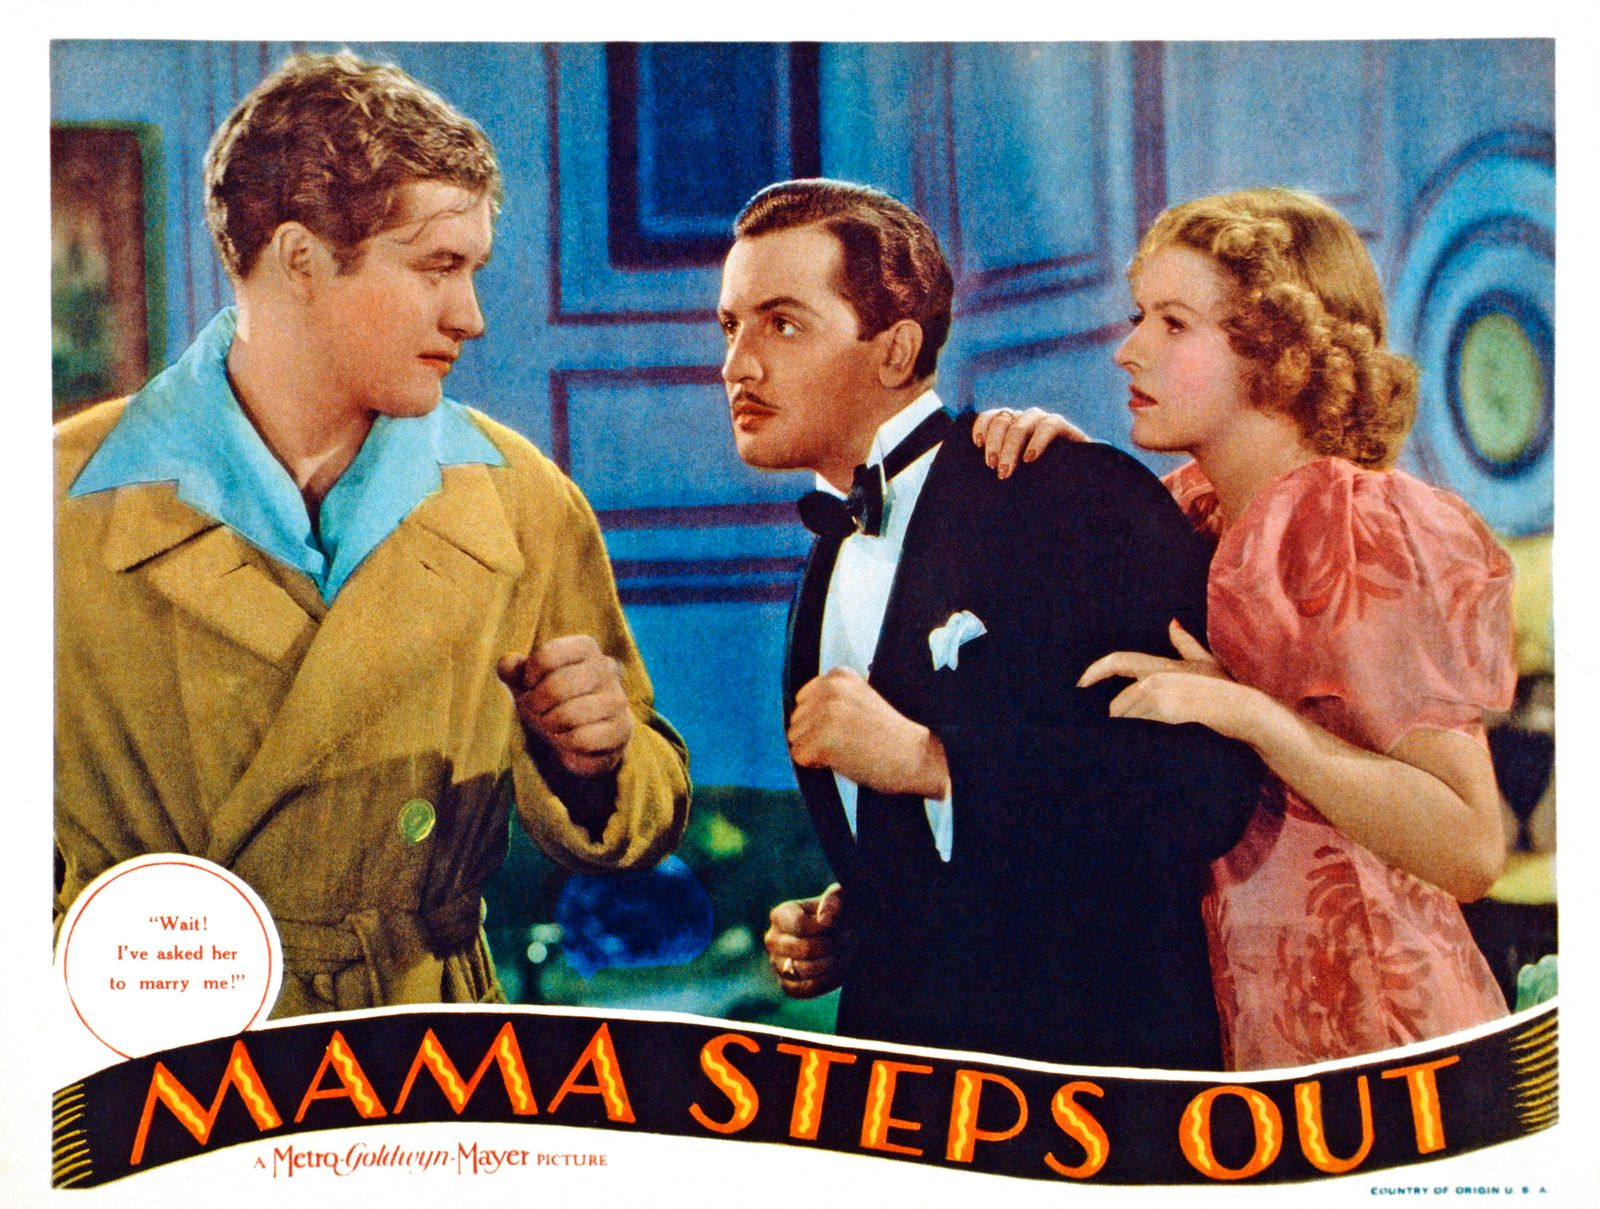 MAMA STEPS OUT, US lobbycard, from left: Dennis Morgan, Edward Norris, Betty Furness, 1937